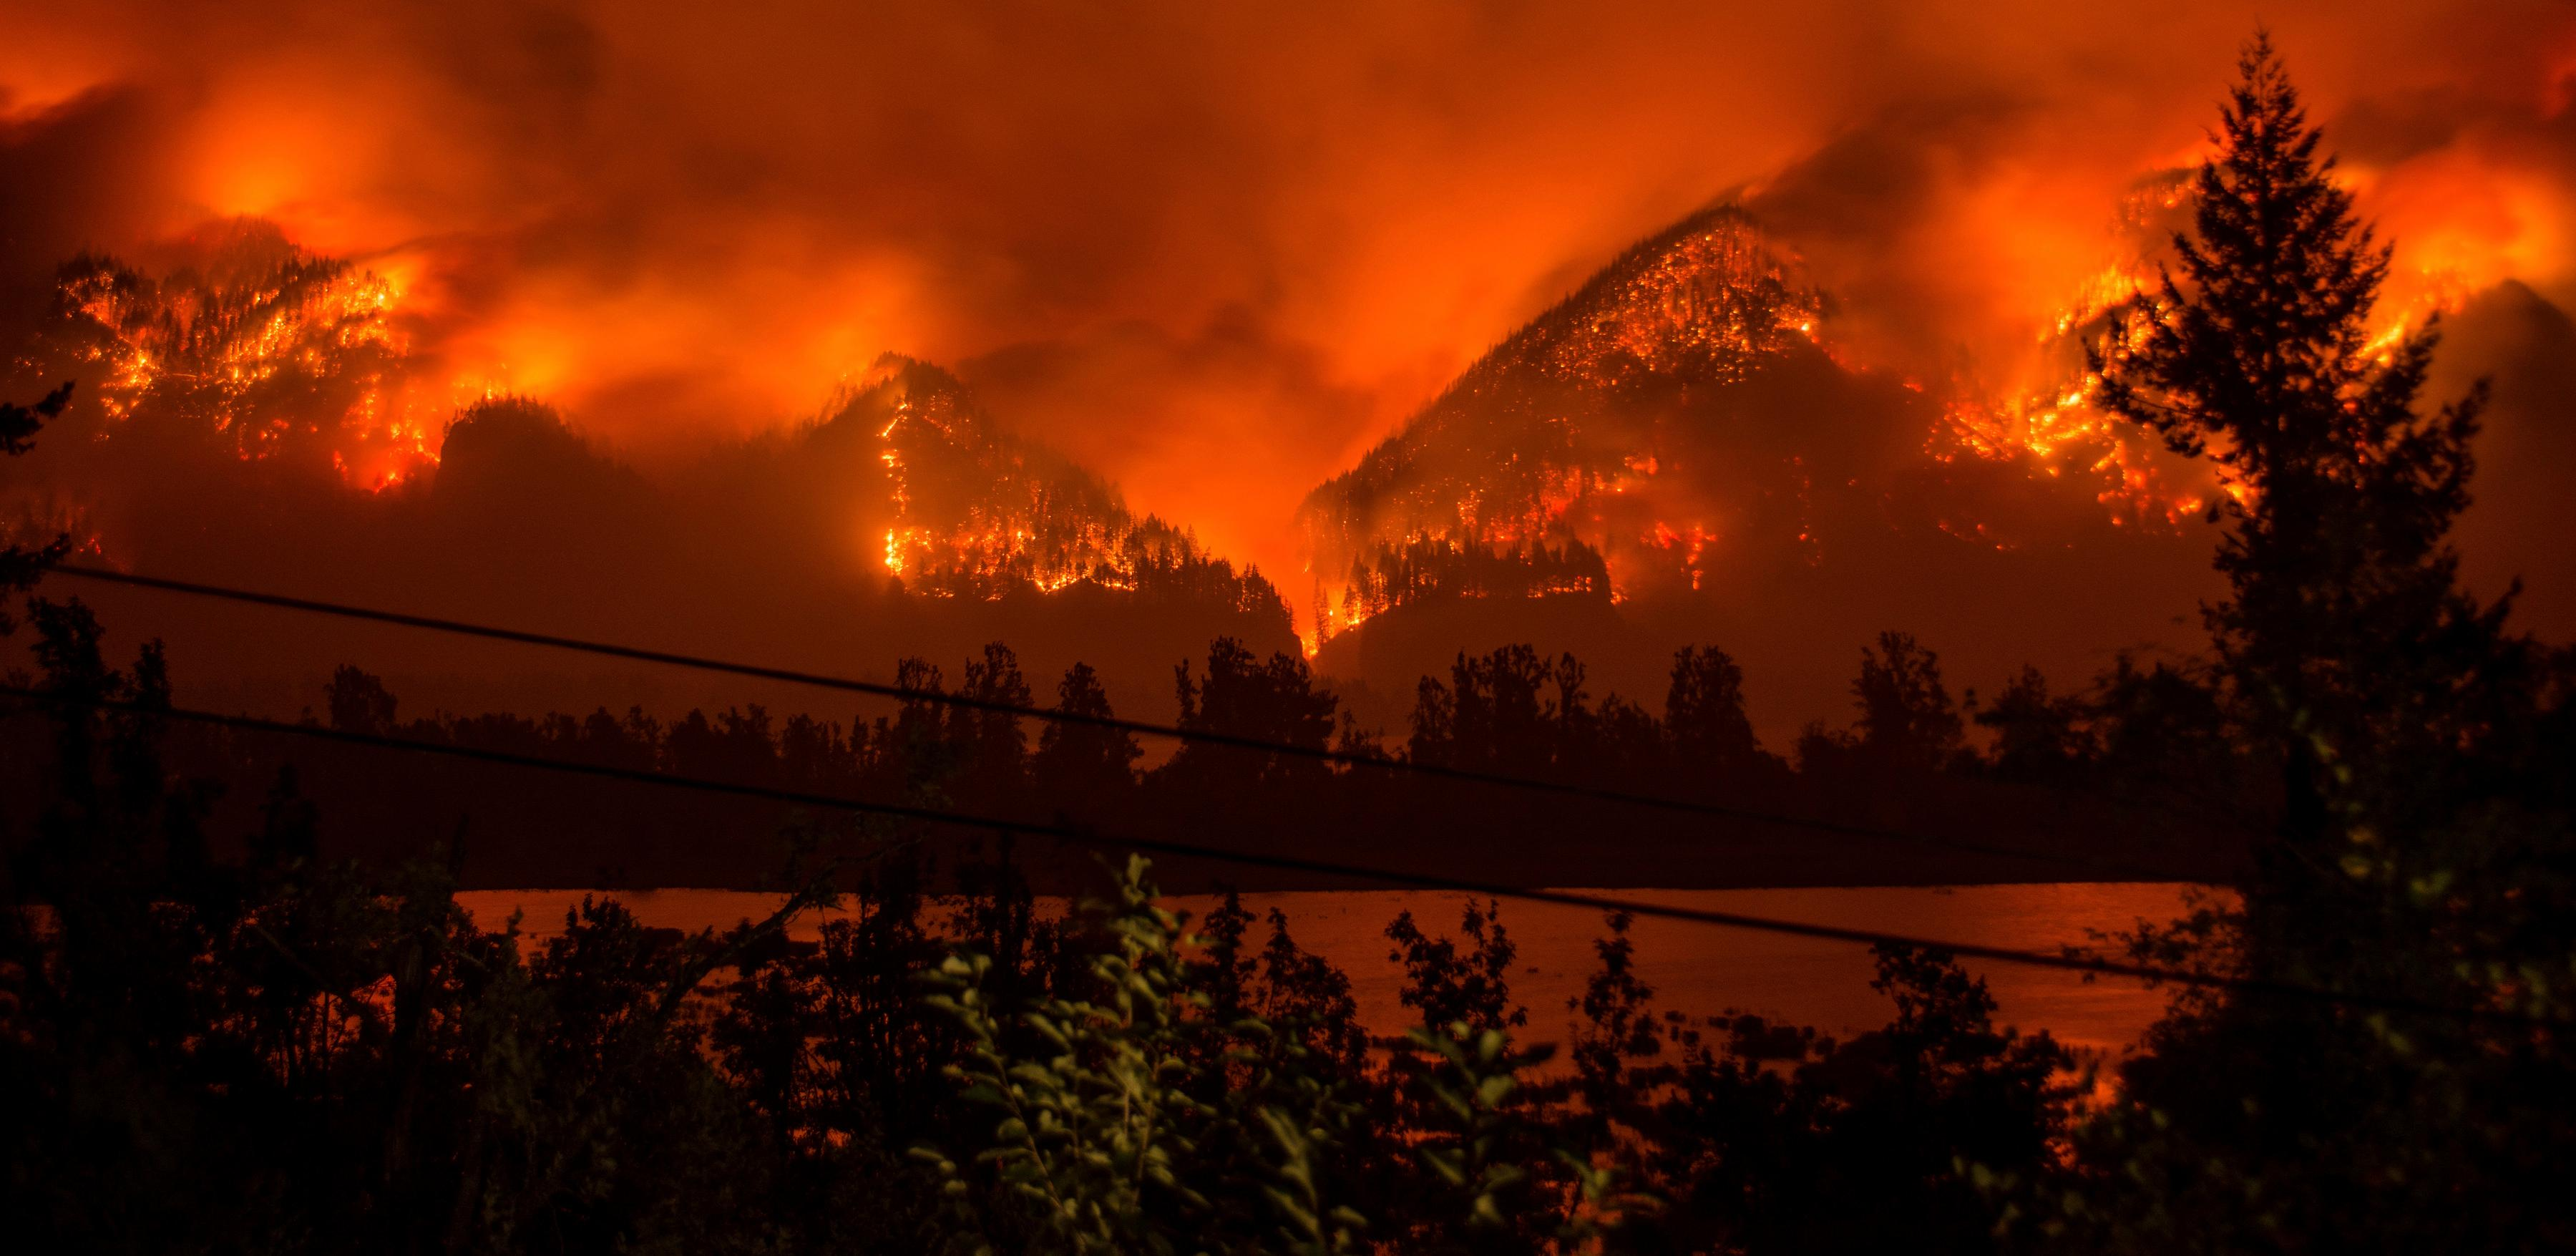 FILE--This Monday, Sept. 4, 2017, file photo provided by KATU-TV shows a wildfire as seen from near Stevenson Wash., across the Columbia River, burning in the Columbia River Gorge above Cascade Locks, Ore. The fast-moving wildfire chewing through Oregon's Columbia River Gorge is threatening more than homes and people. It's also devouring the heart of the state's nature-loving identity. (Tristan Fortsch/KATU-TV via AP, file)